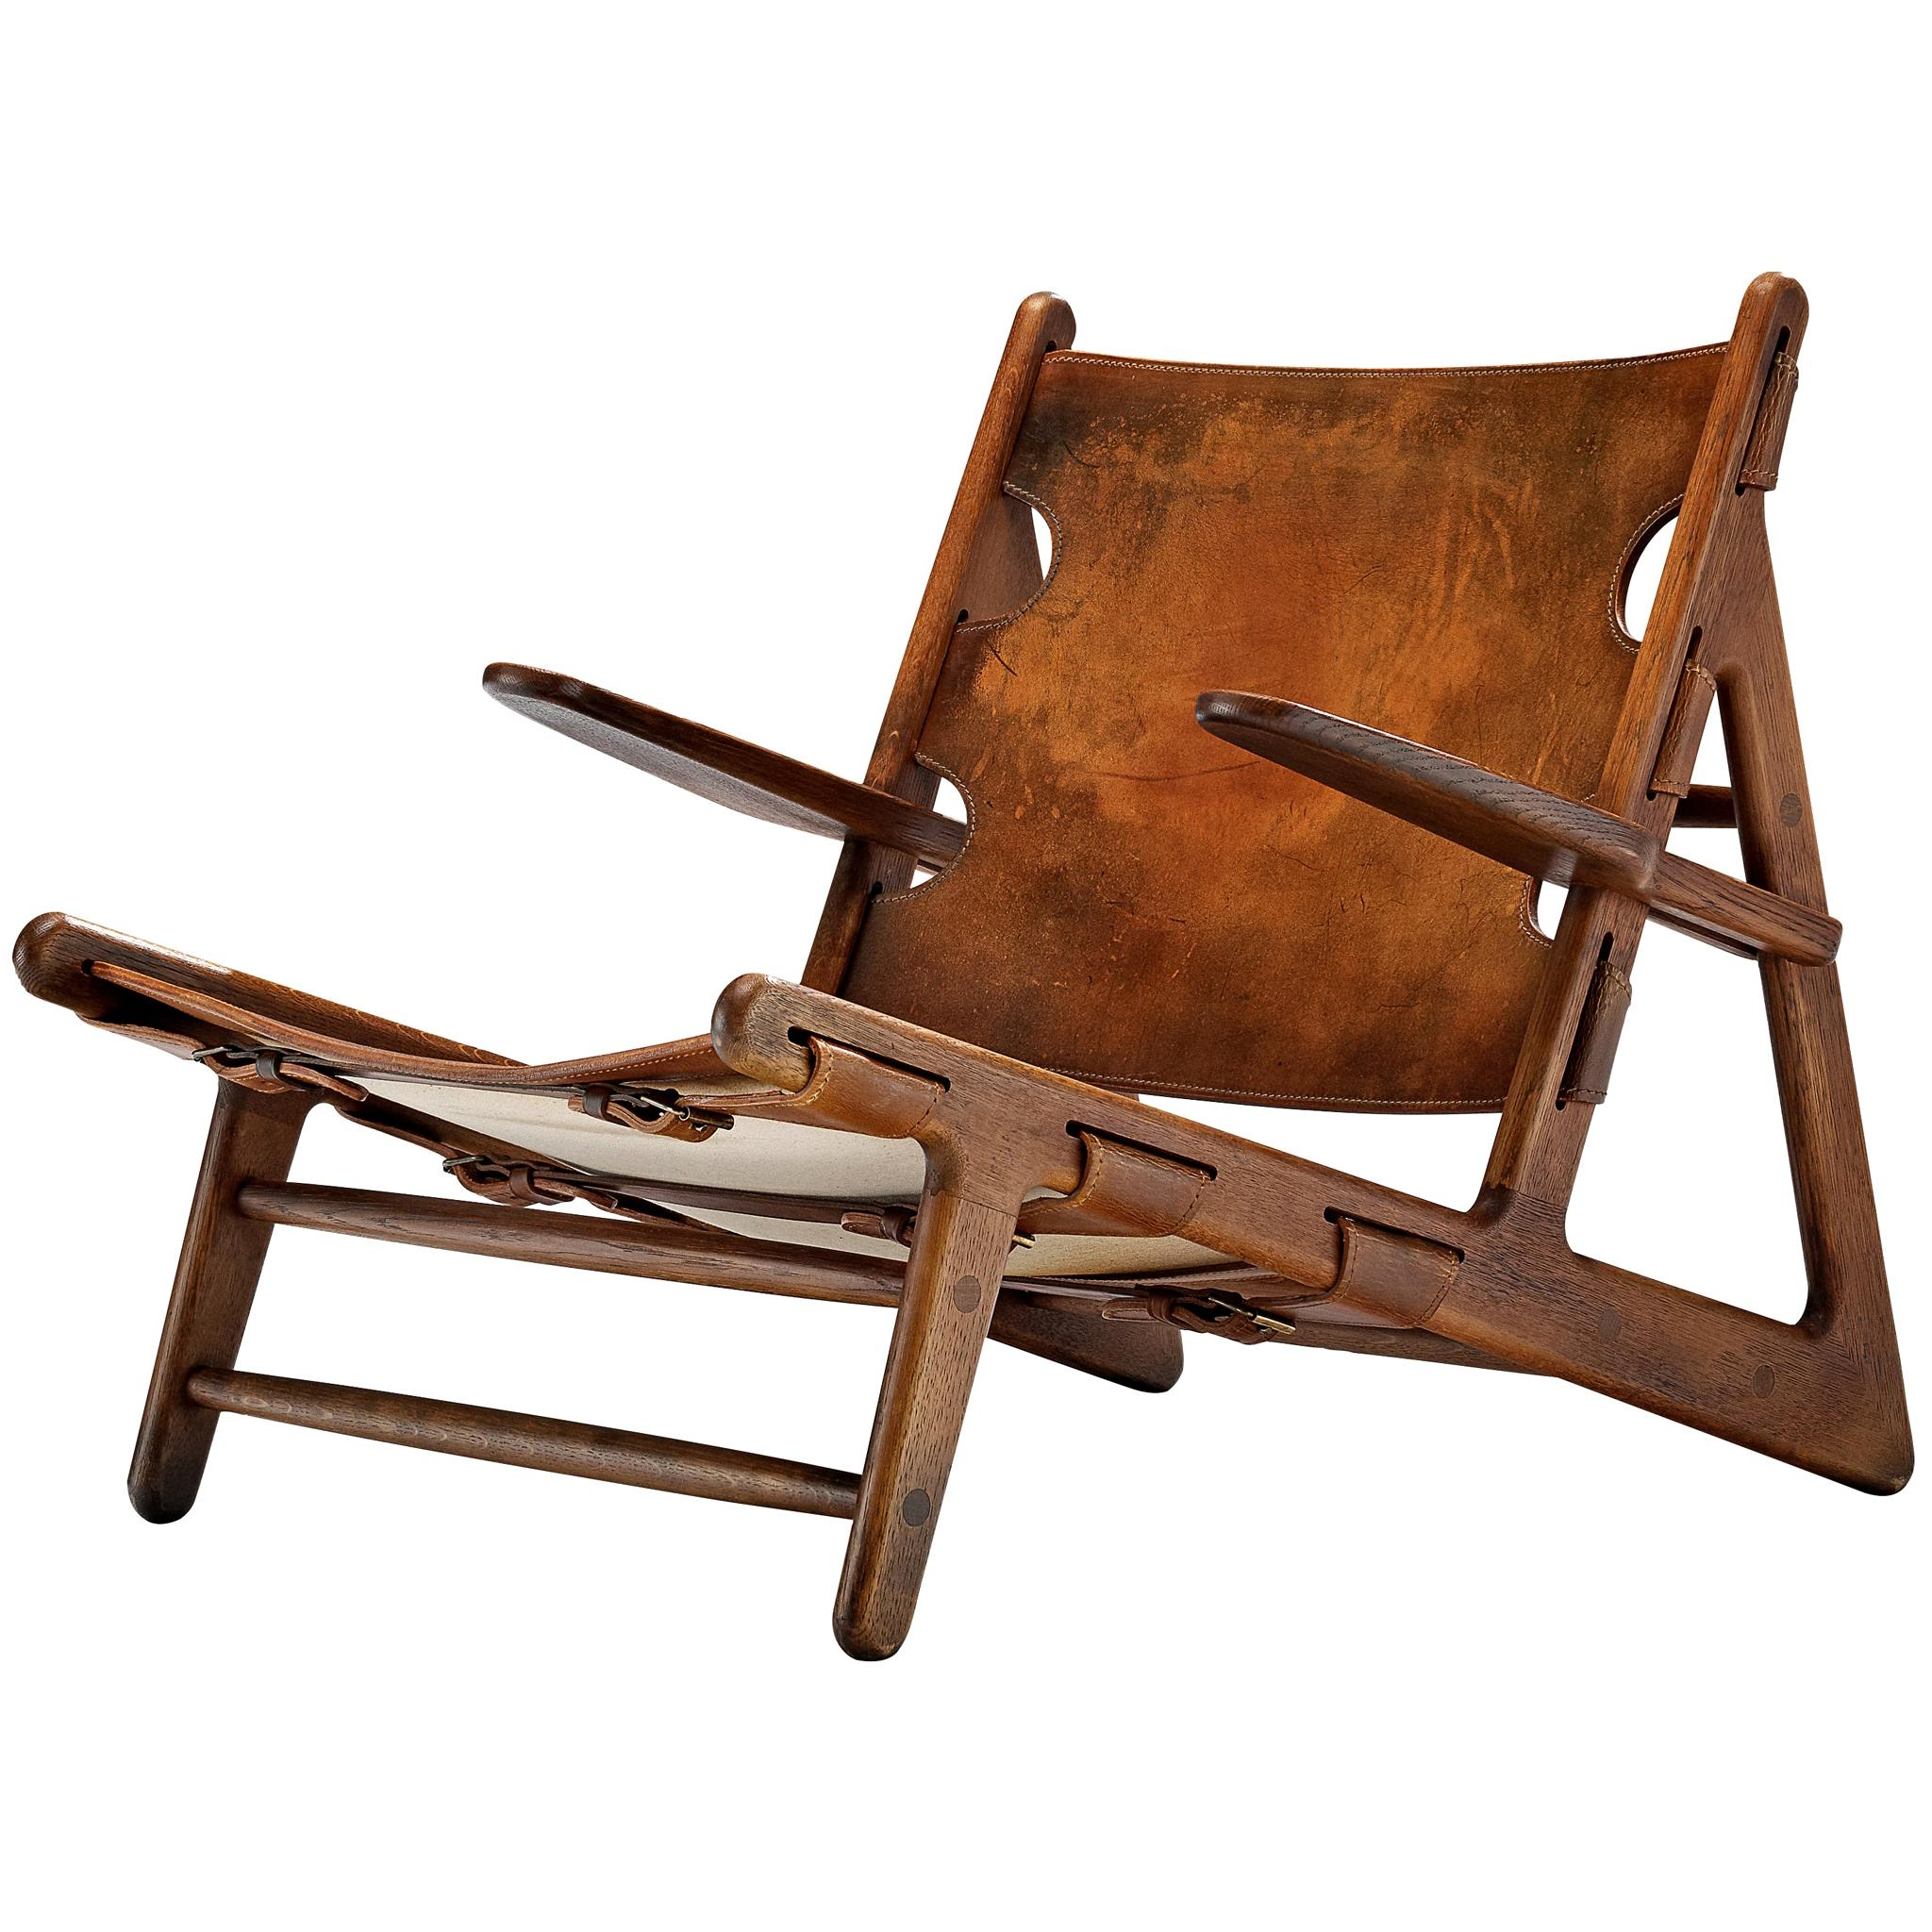 Børge Mogensen Hunting Chair Model 2229